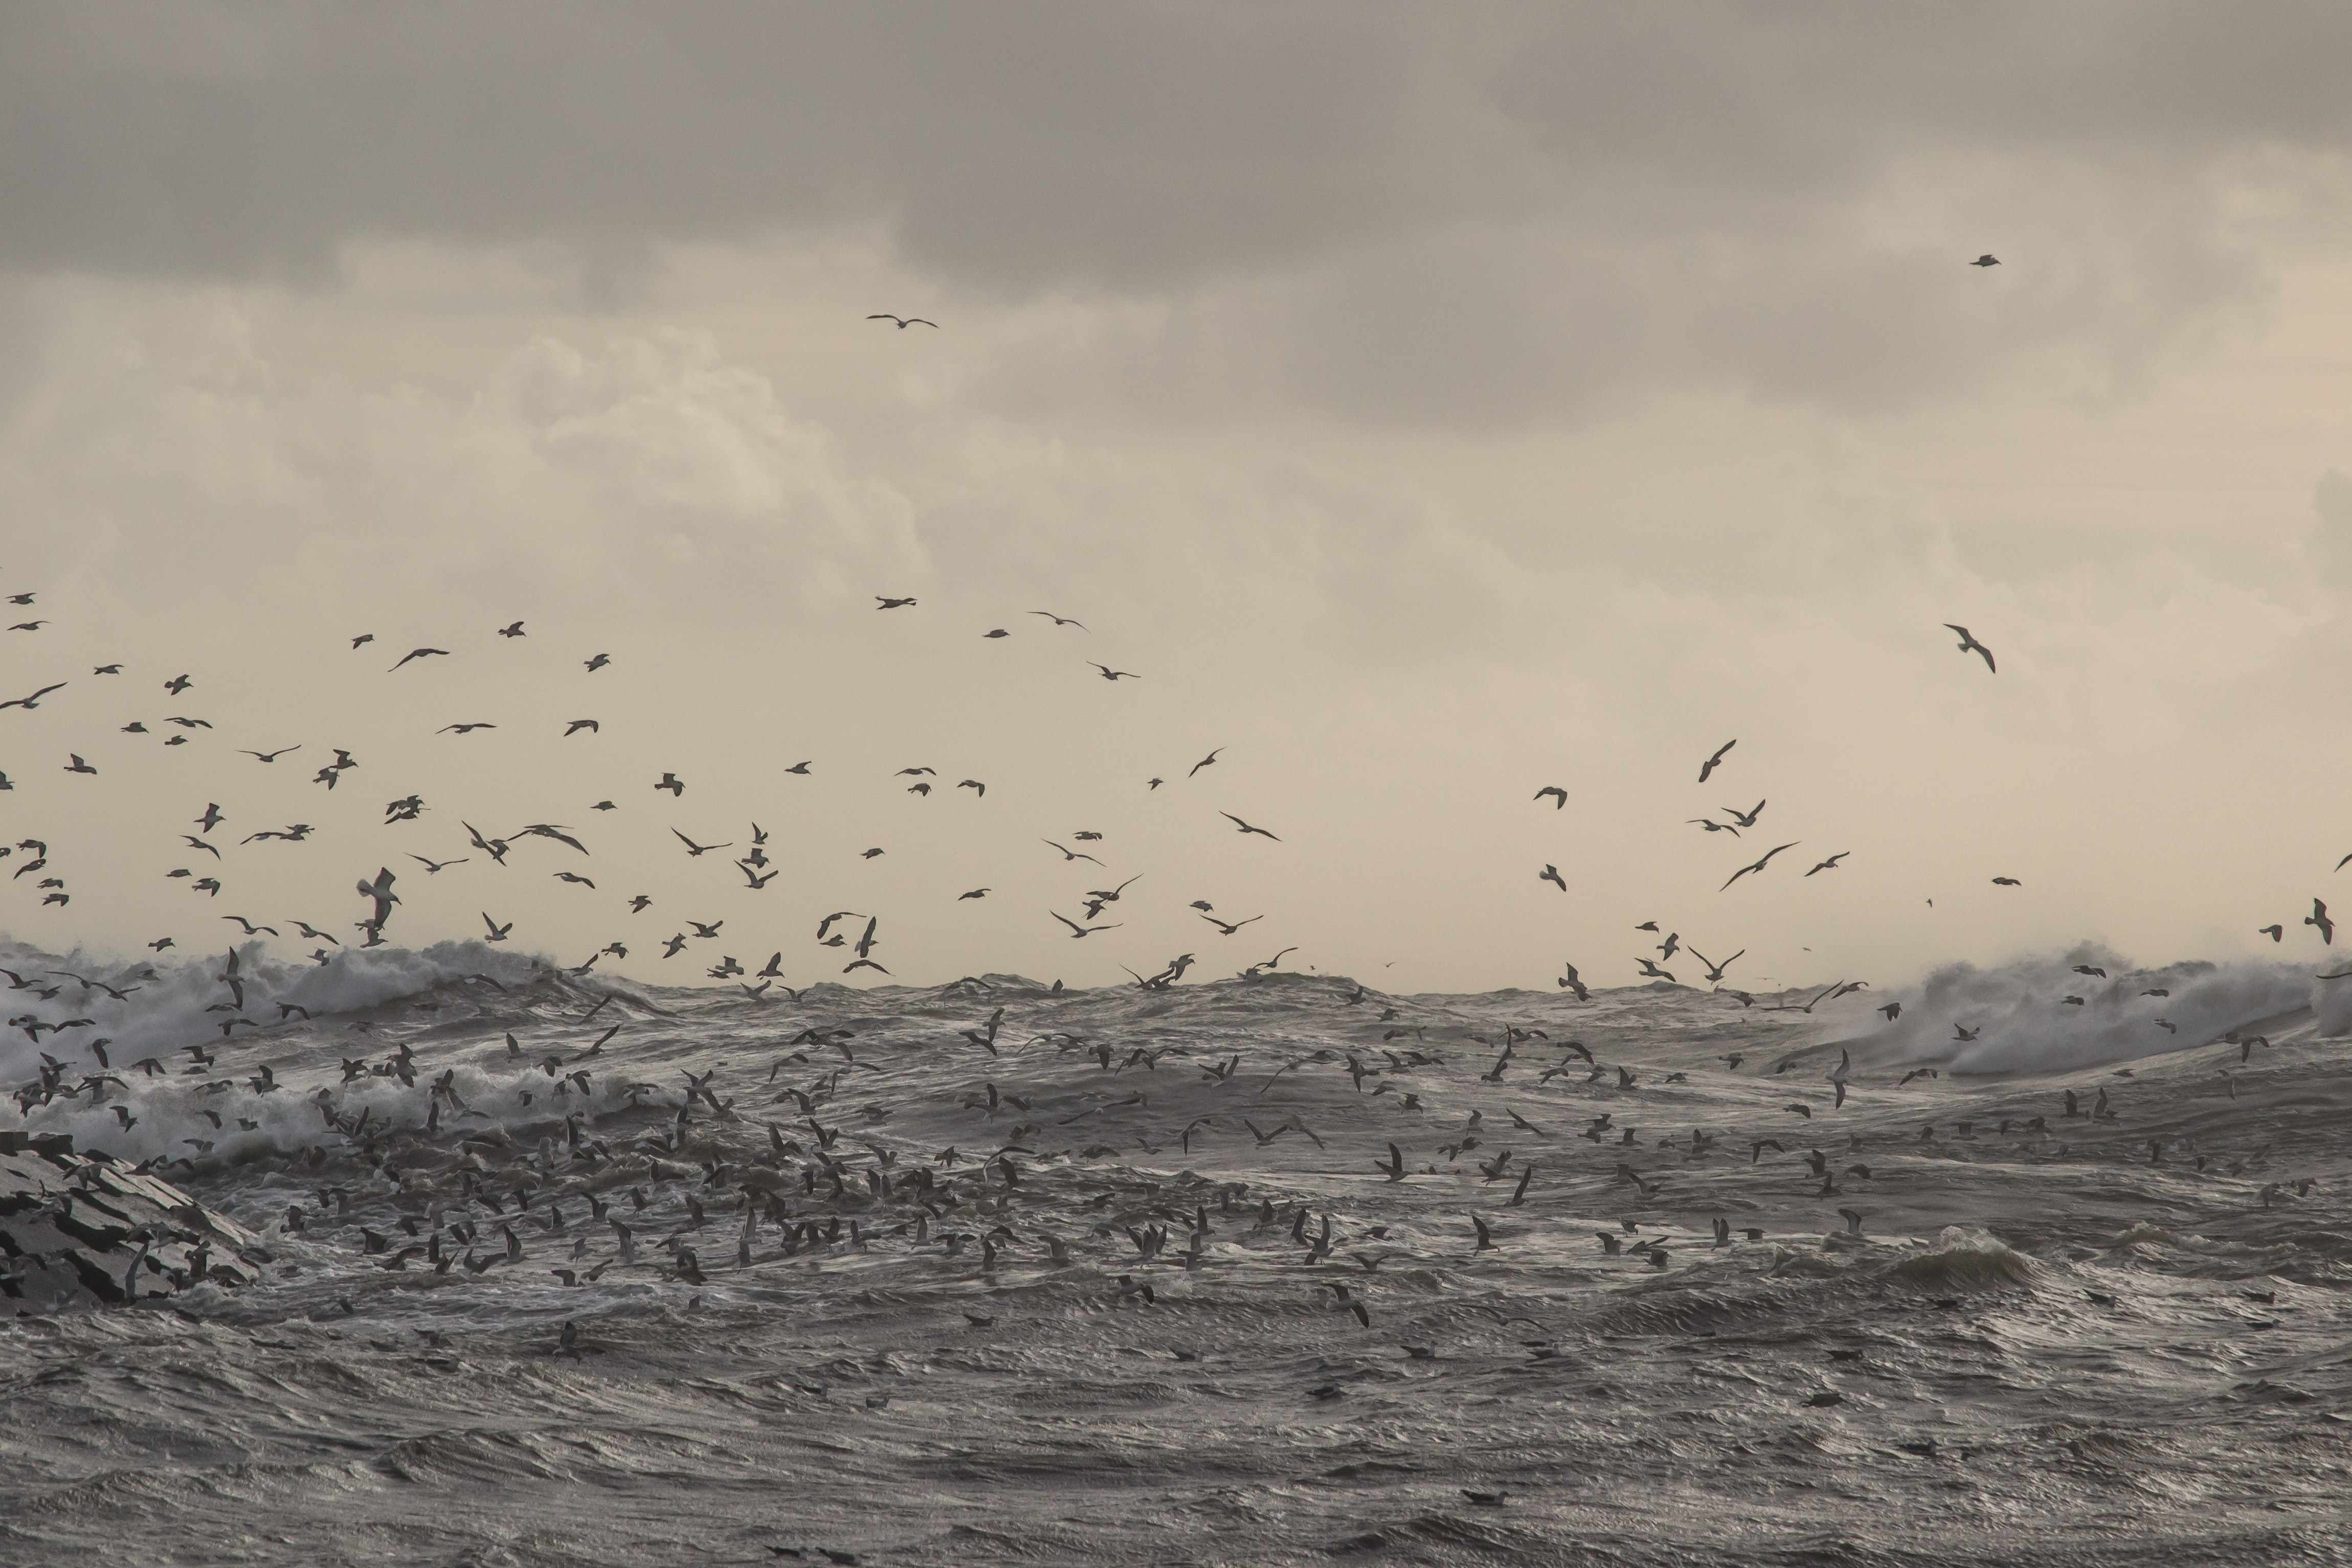 flock of birds flying over body of water